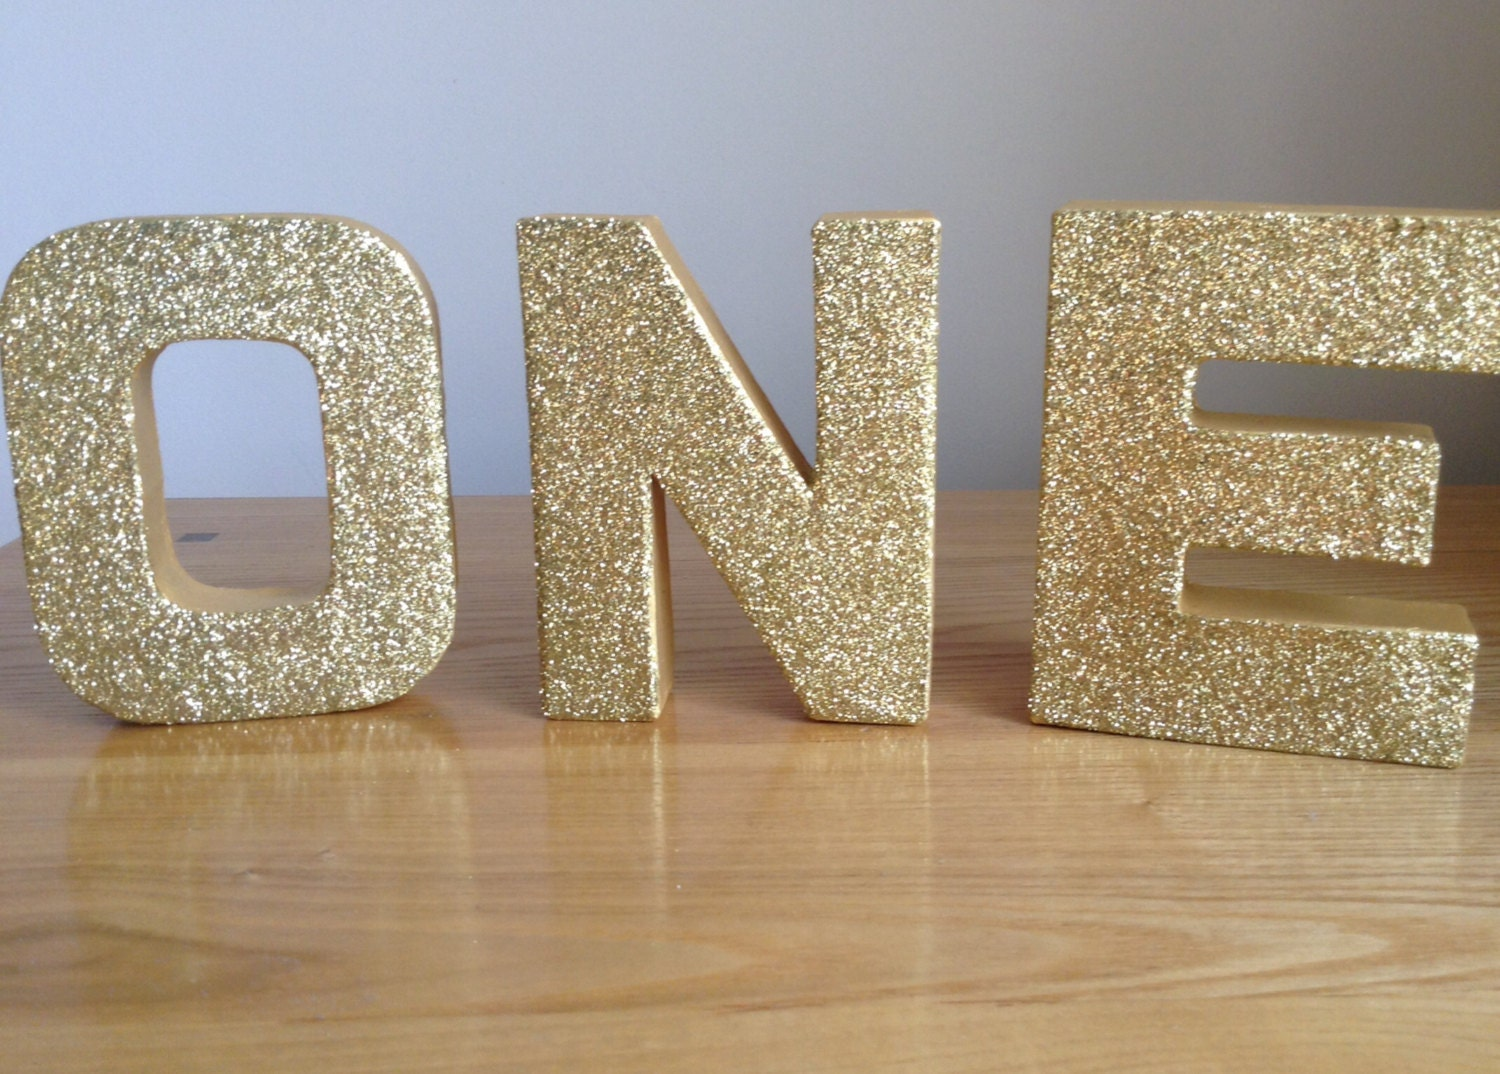 gold glitter letters one freestandingstand alone gold letters 1st birthday party decor gold paper mch letters